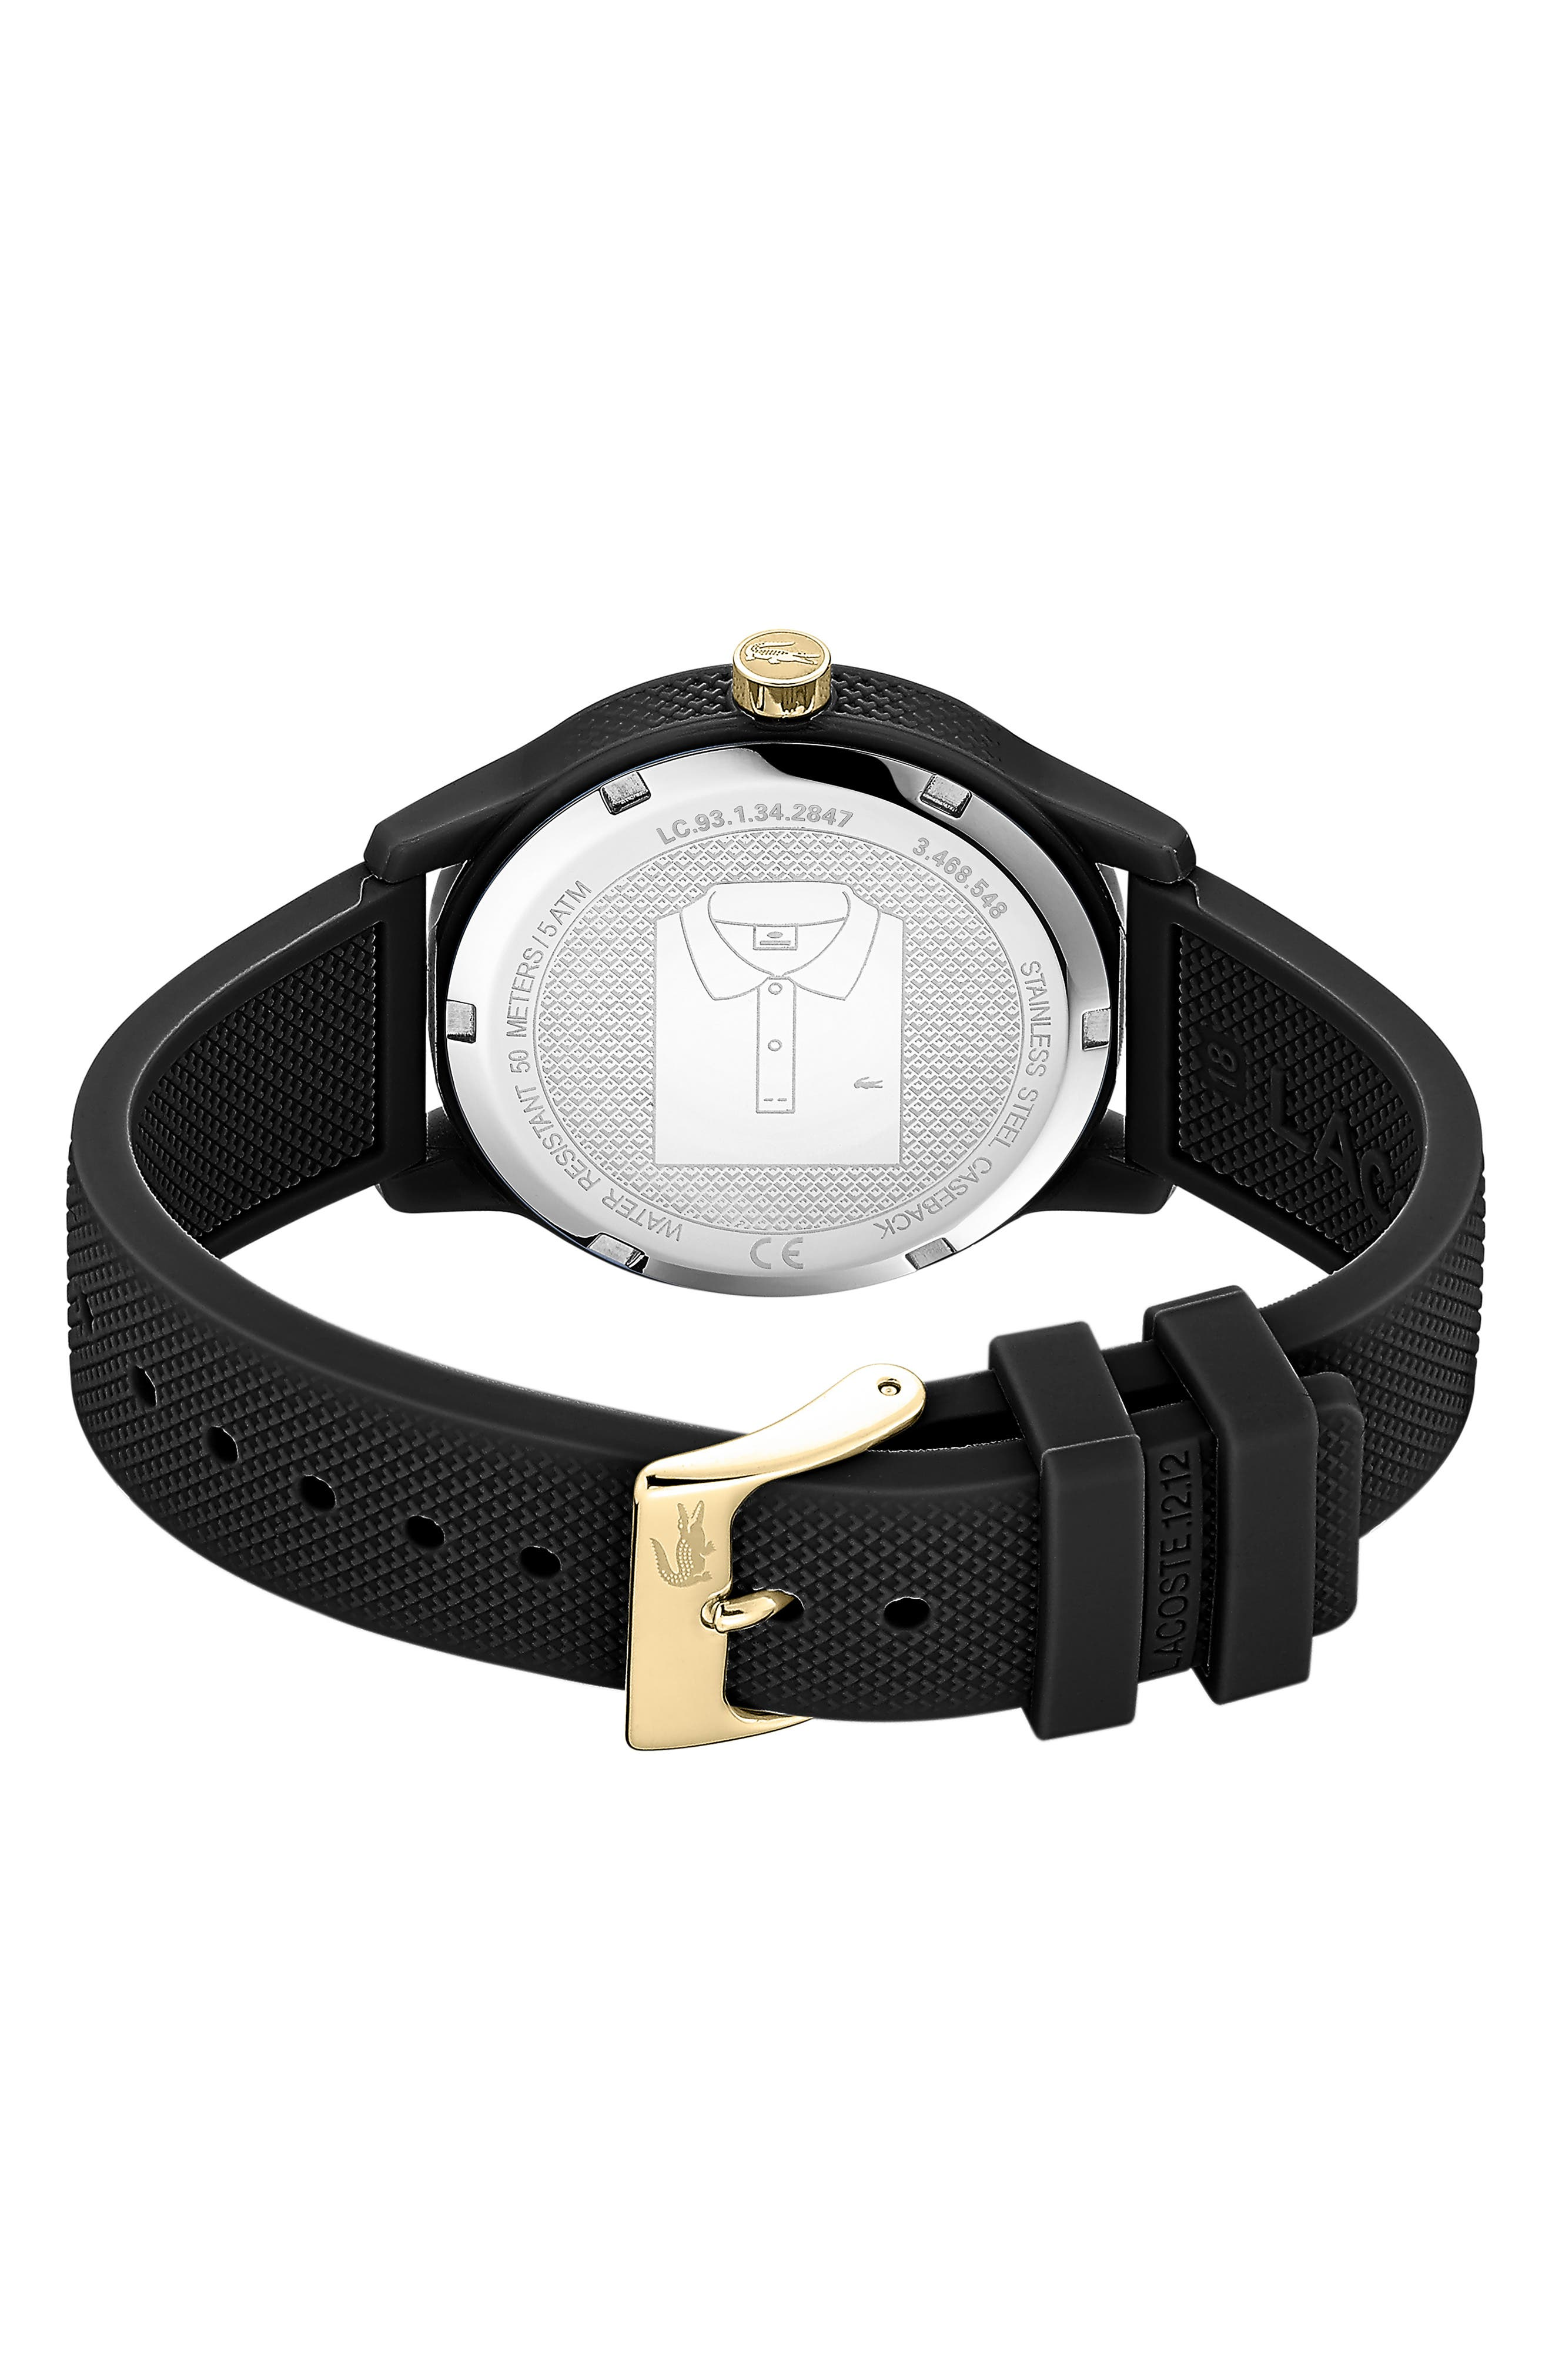 LACOSTE, 12.12 Silicone Strap Watch, 36mm, Alternate thumbnail 2, color, BLACK